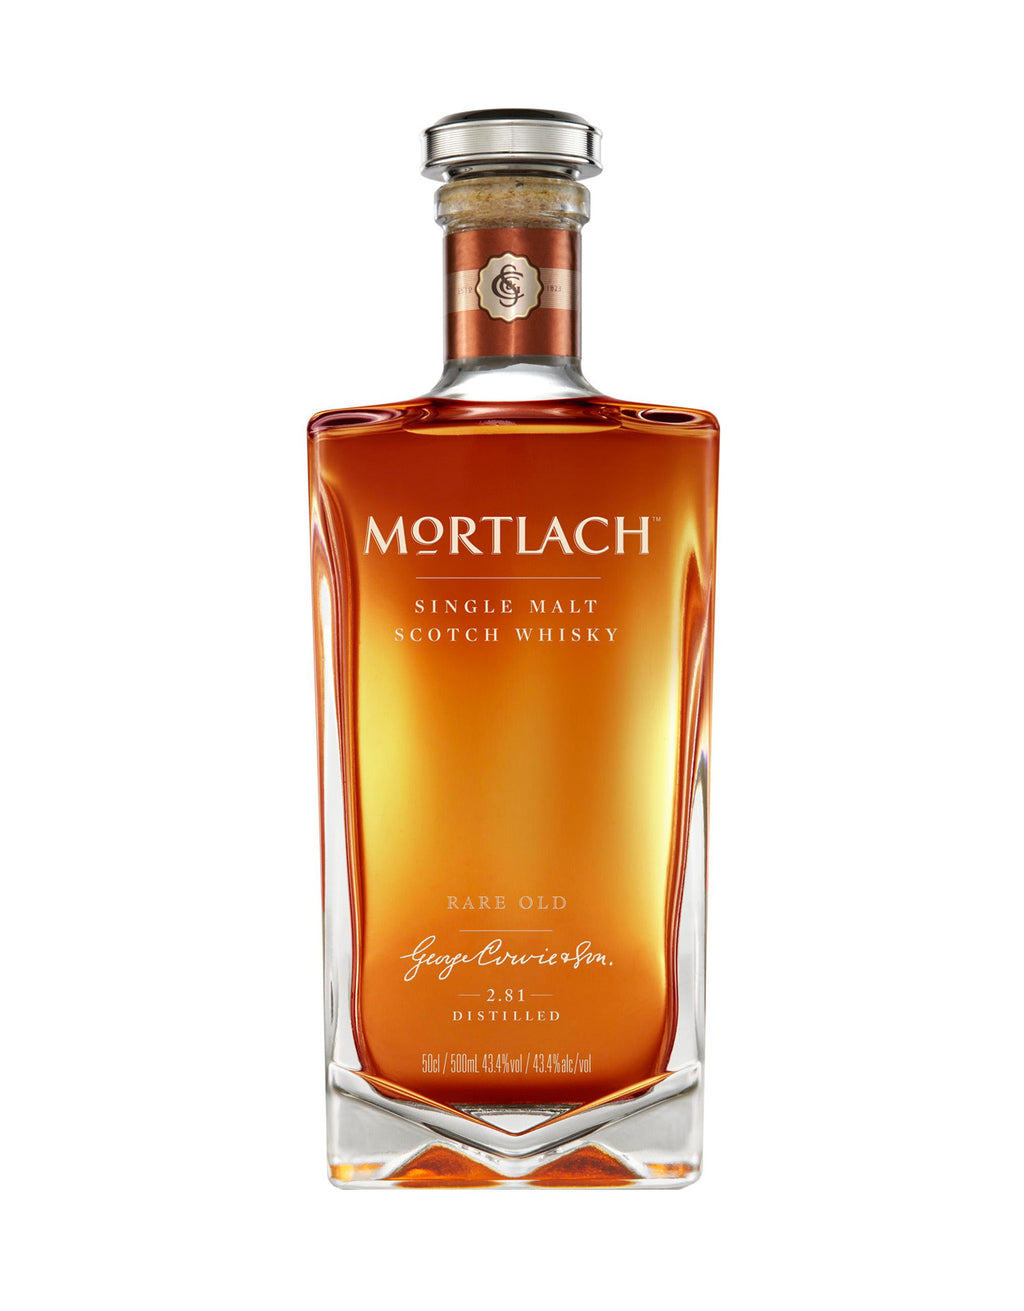 Mortlach Rare Old Scotch